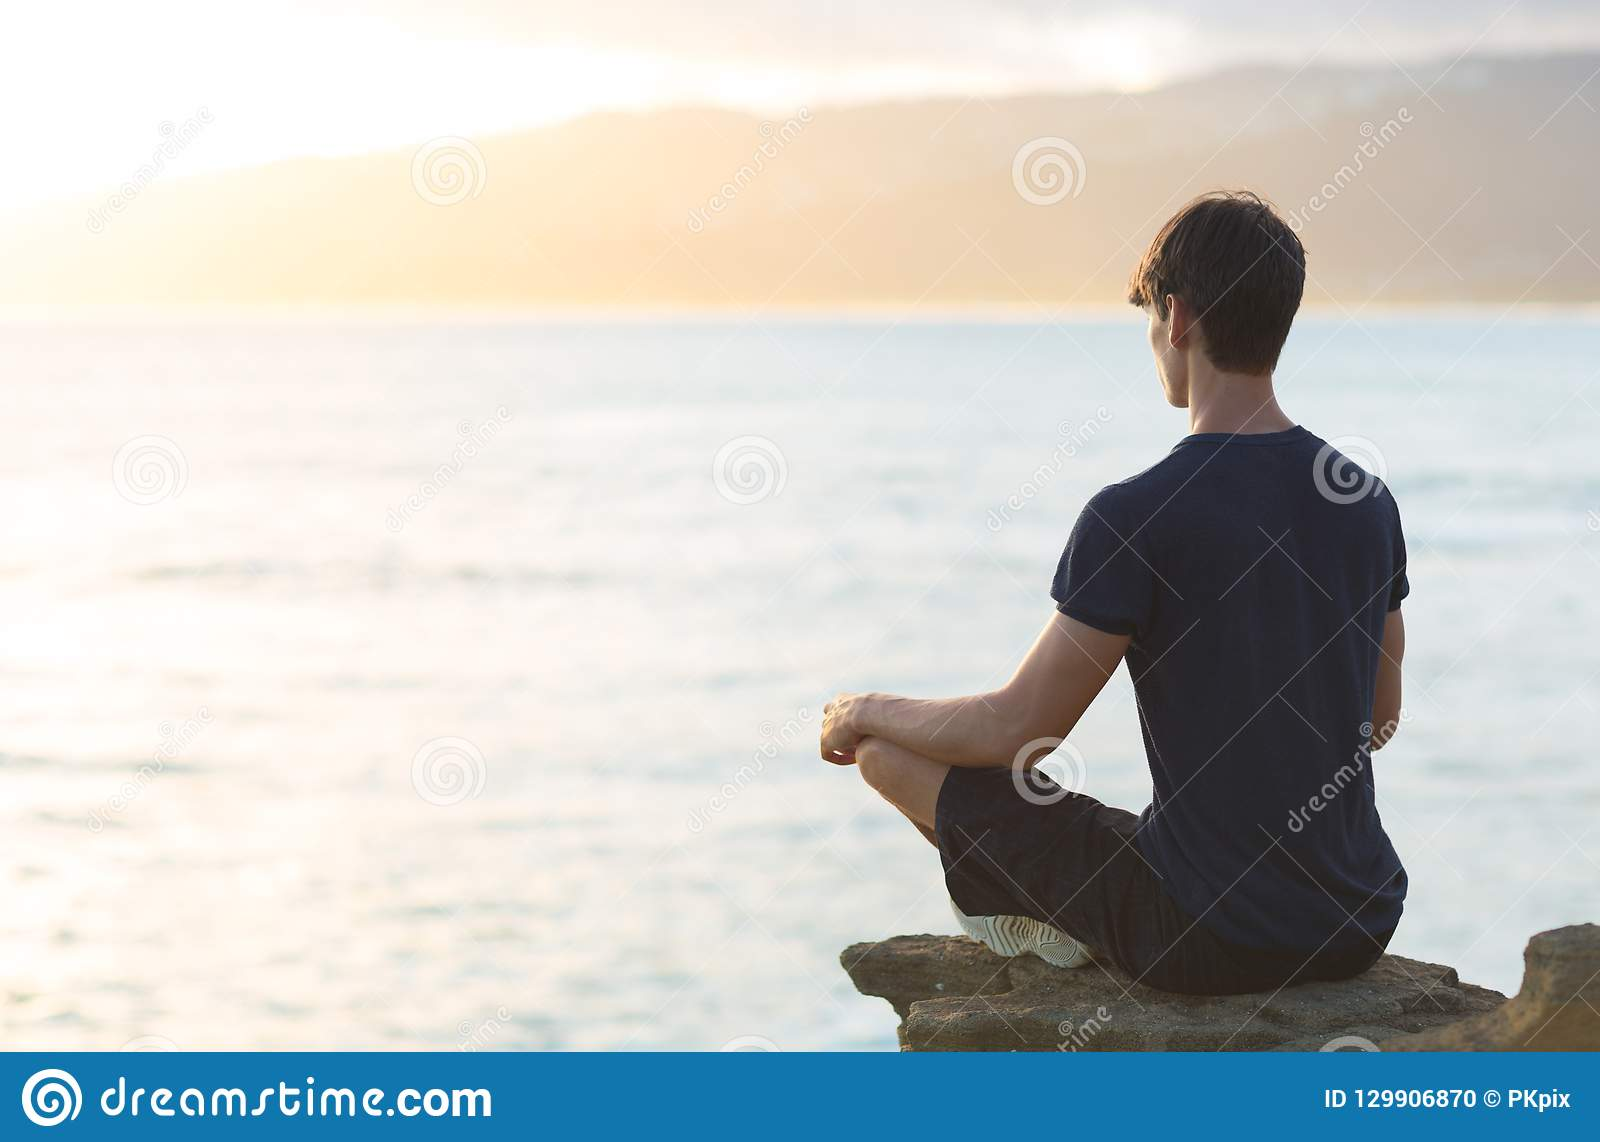 Young man meditating on top ocean cliff during sunset.